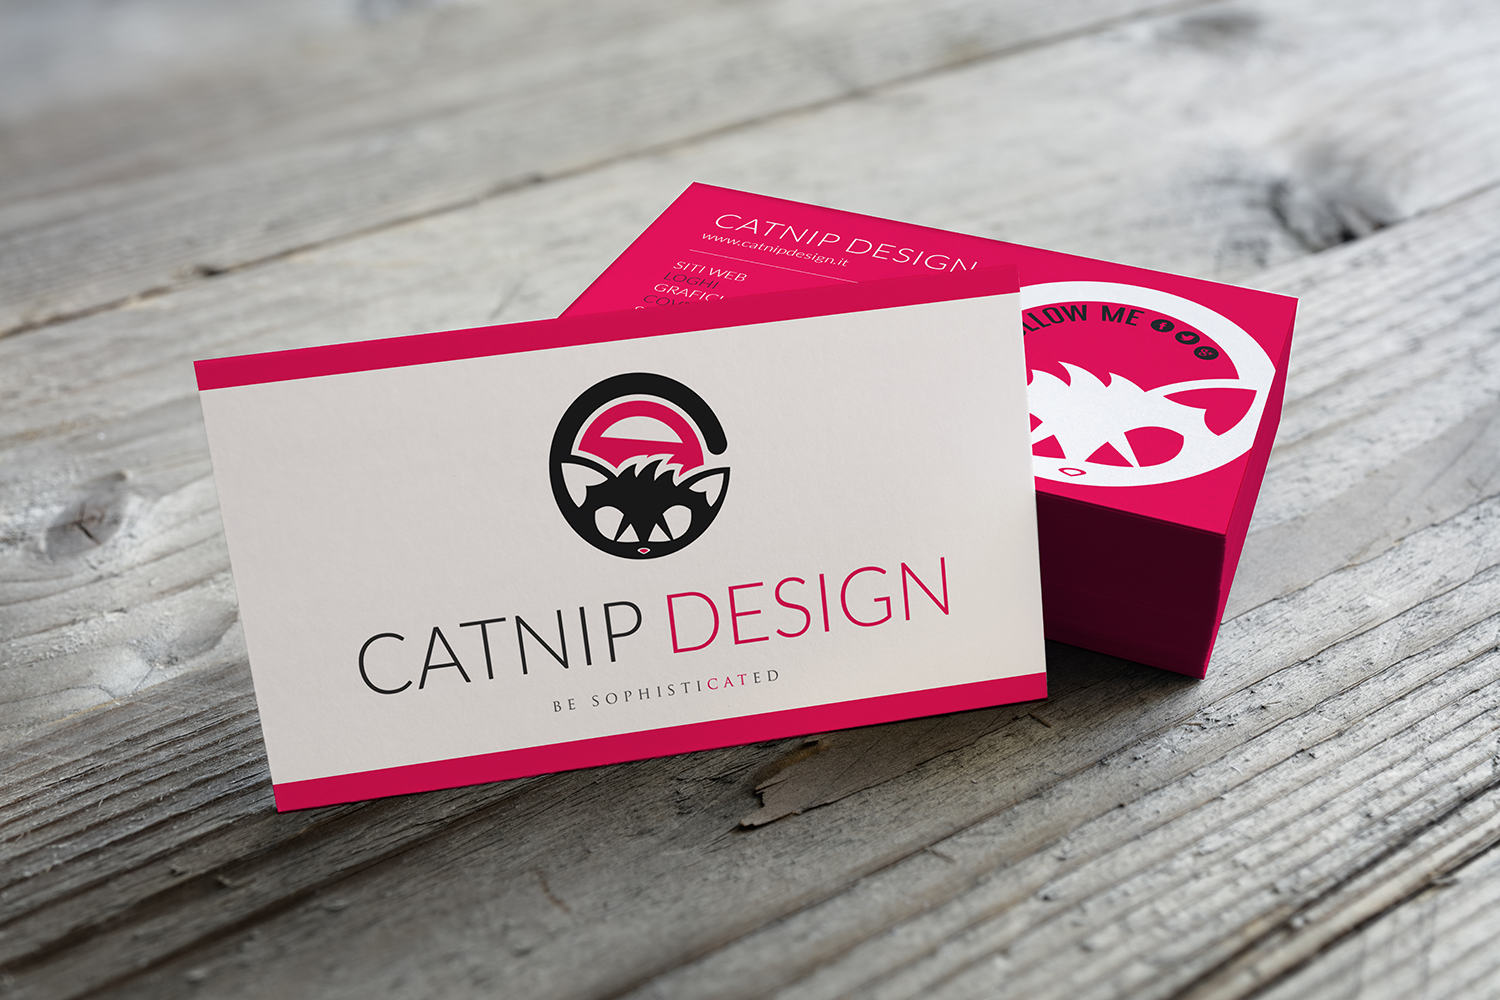 Catnip Design - Be Sophisticated